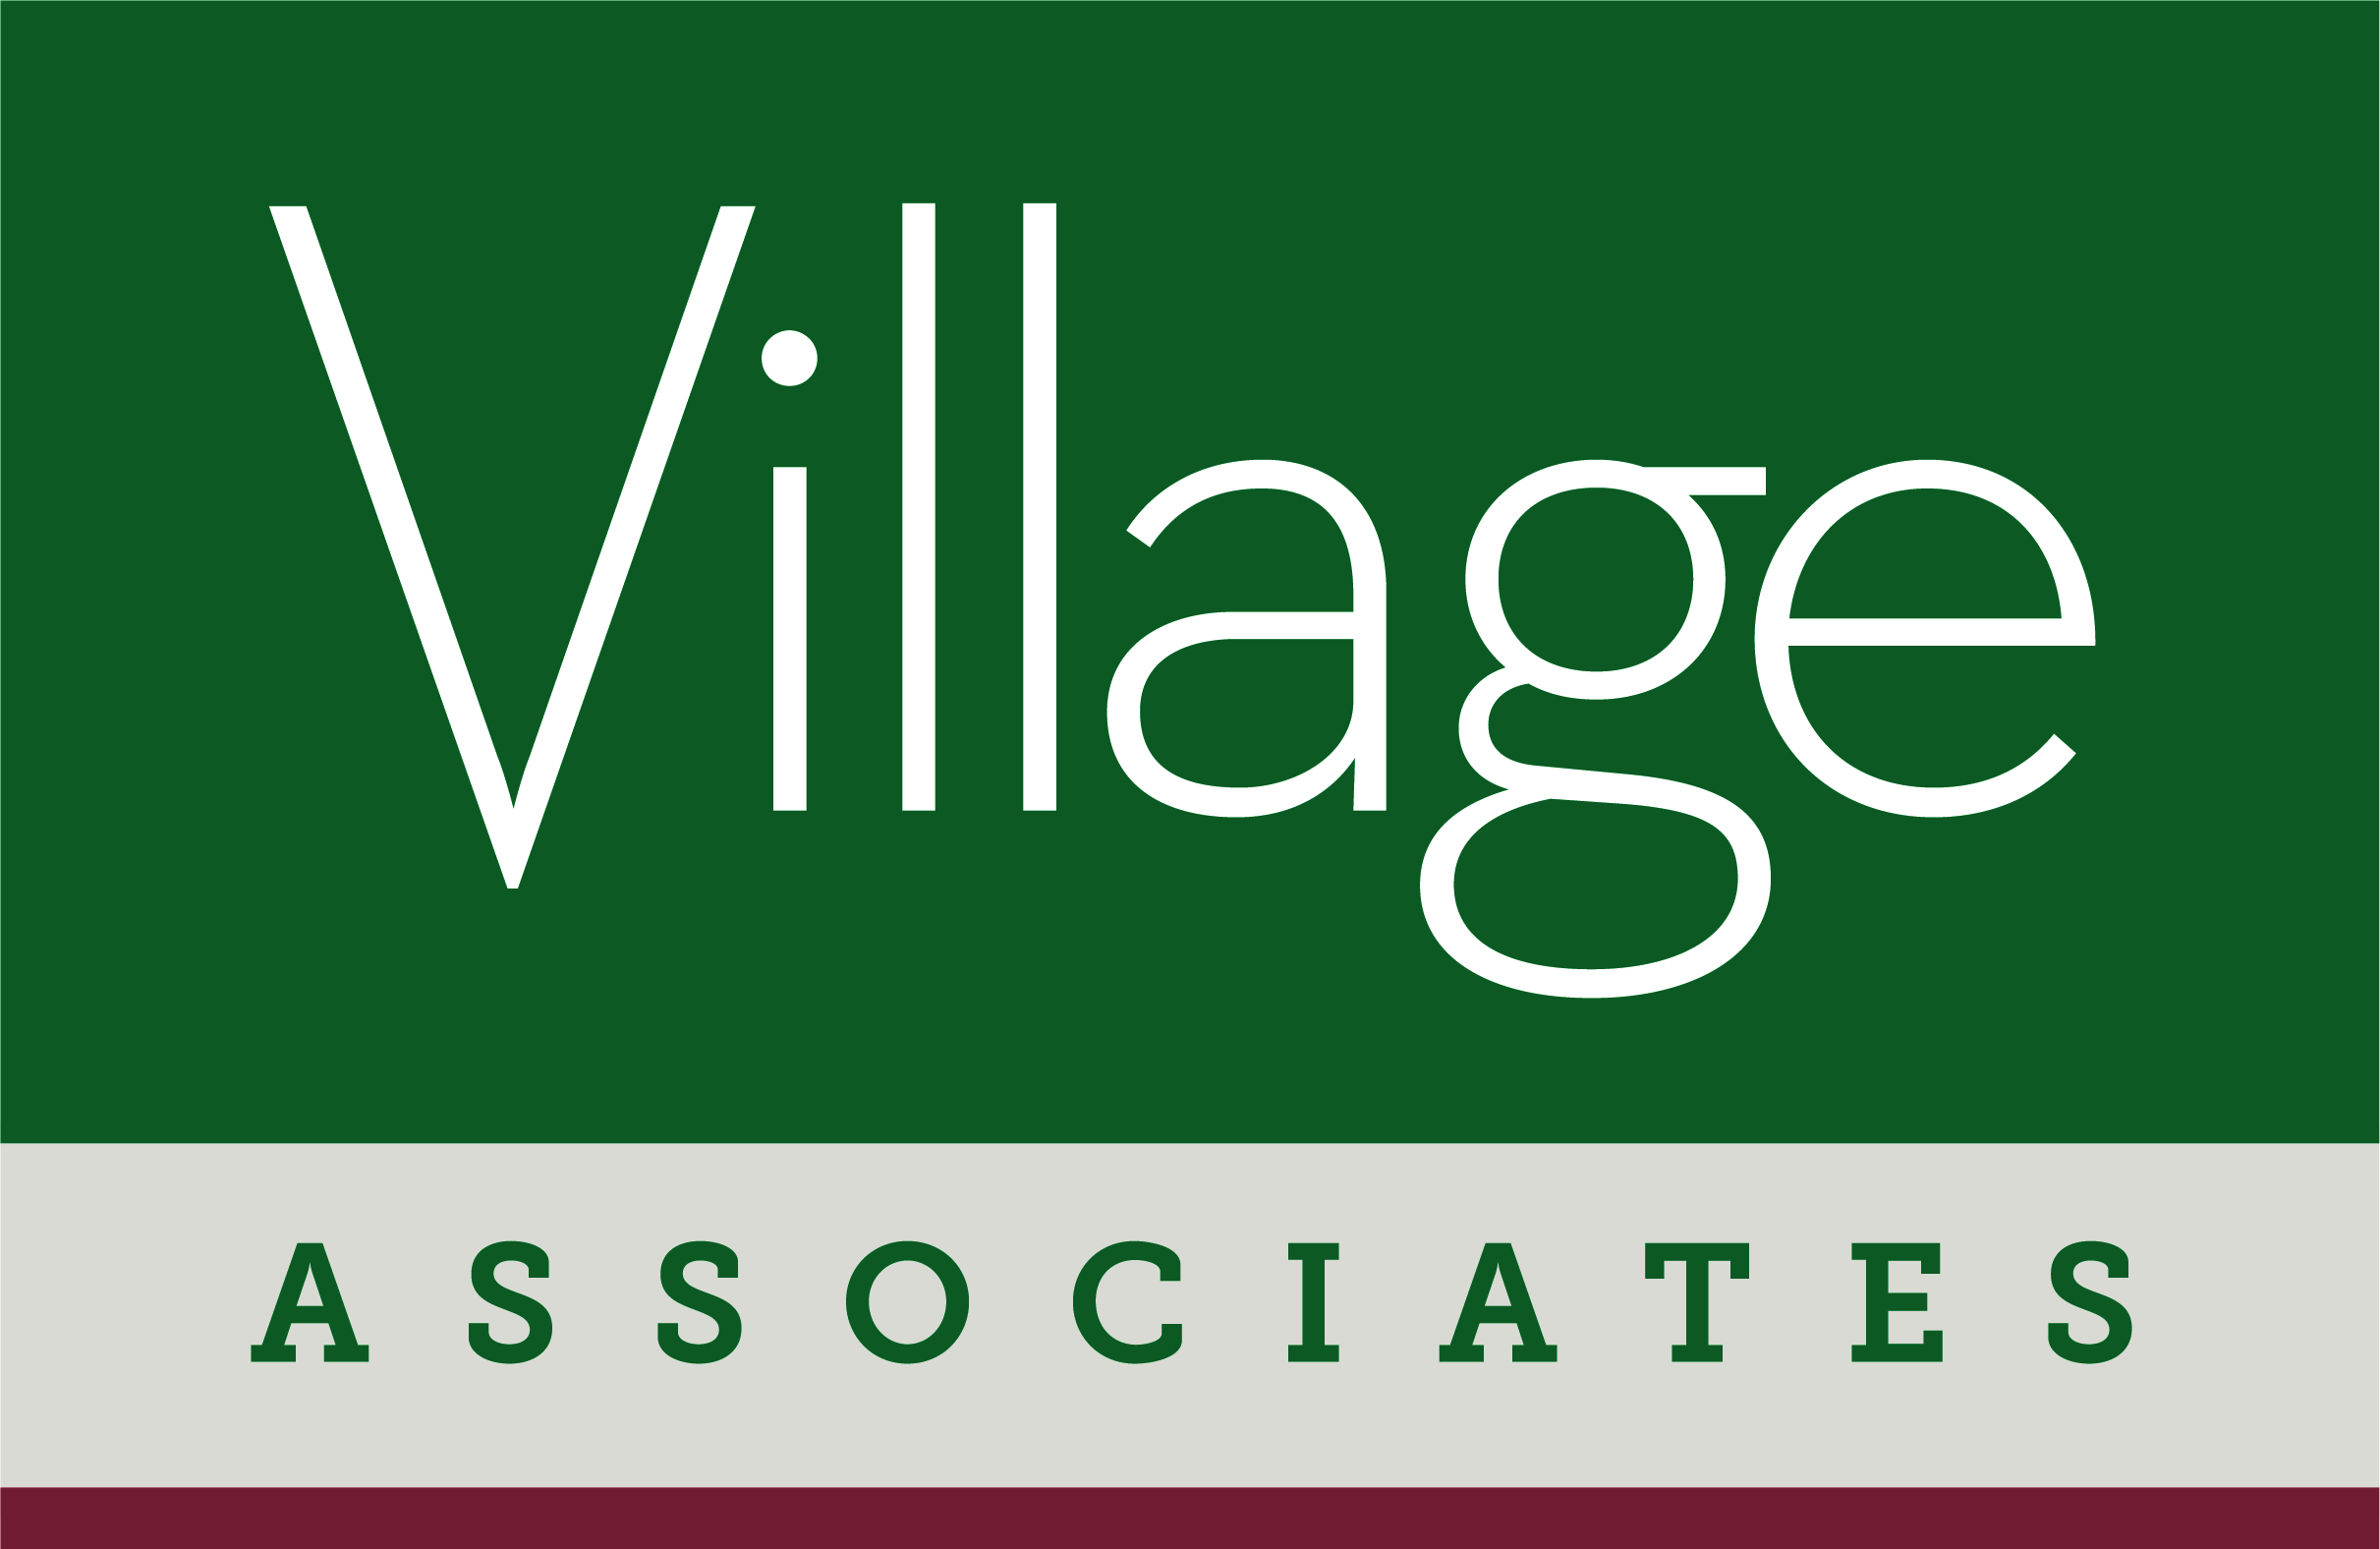 Village Associates - The Proven Brokerage